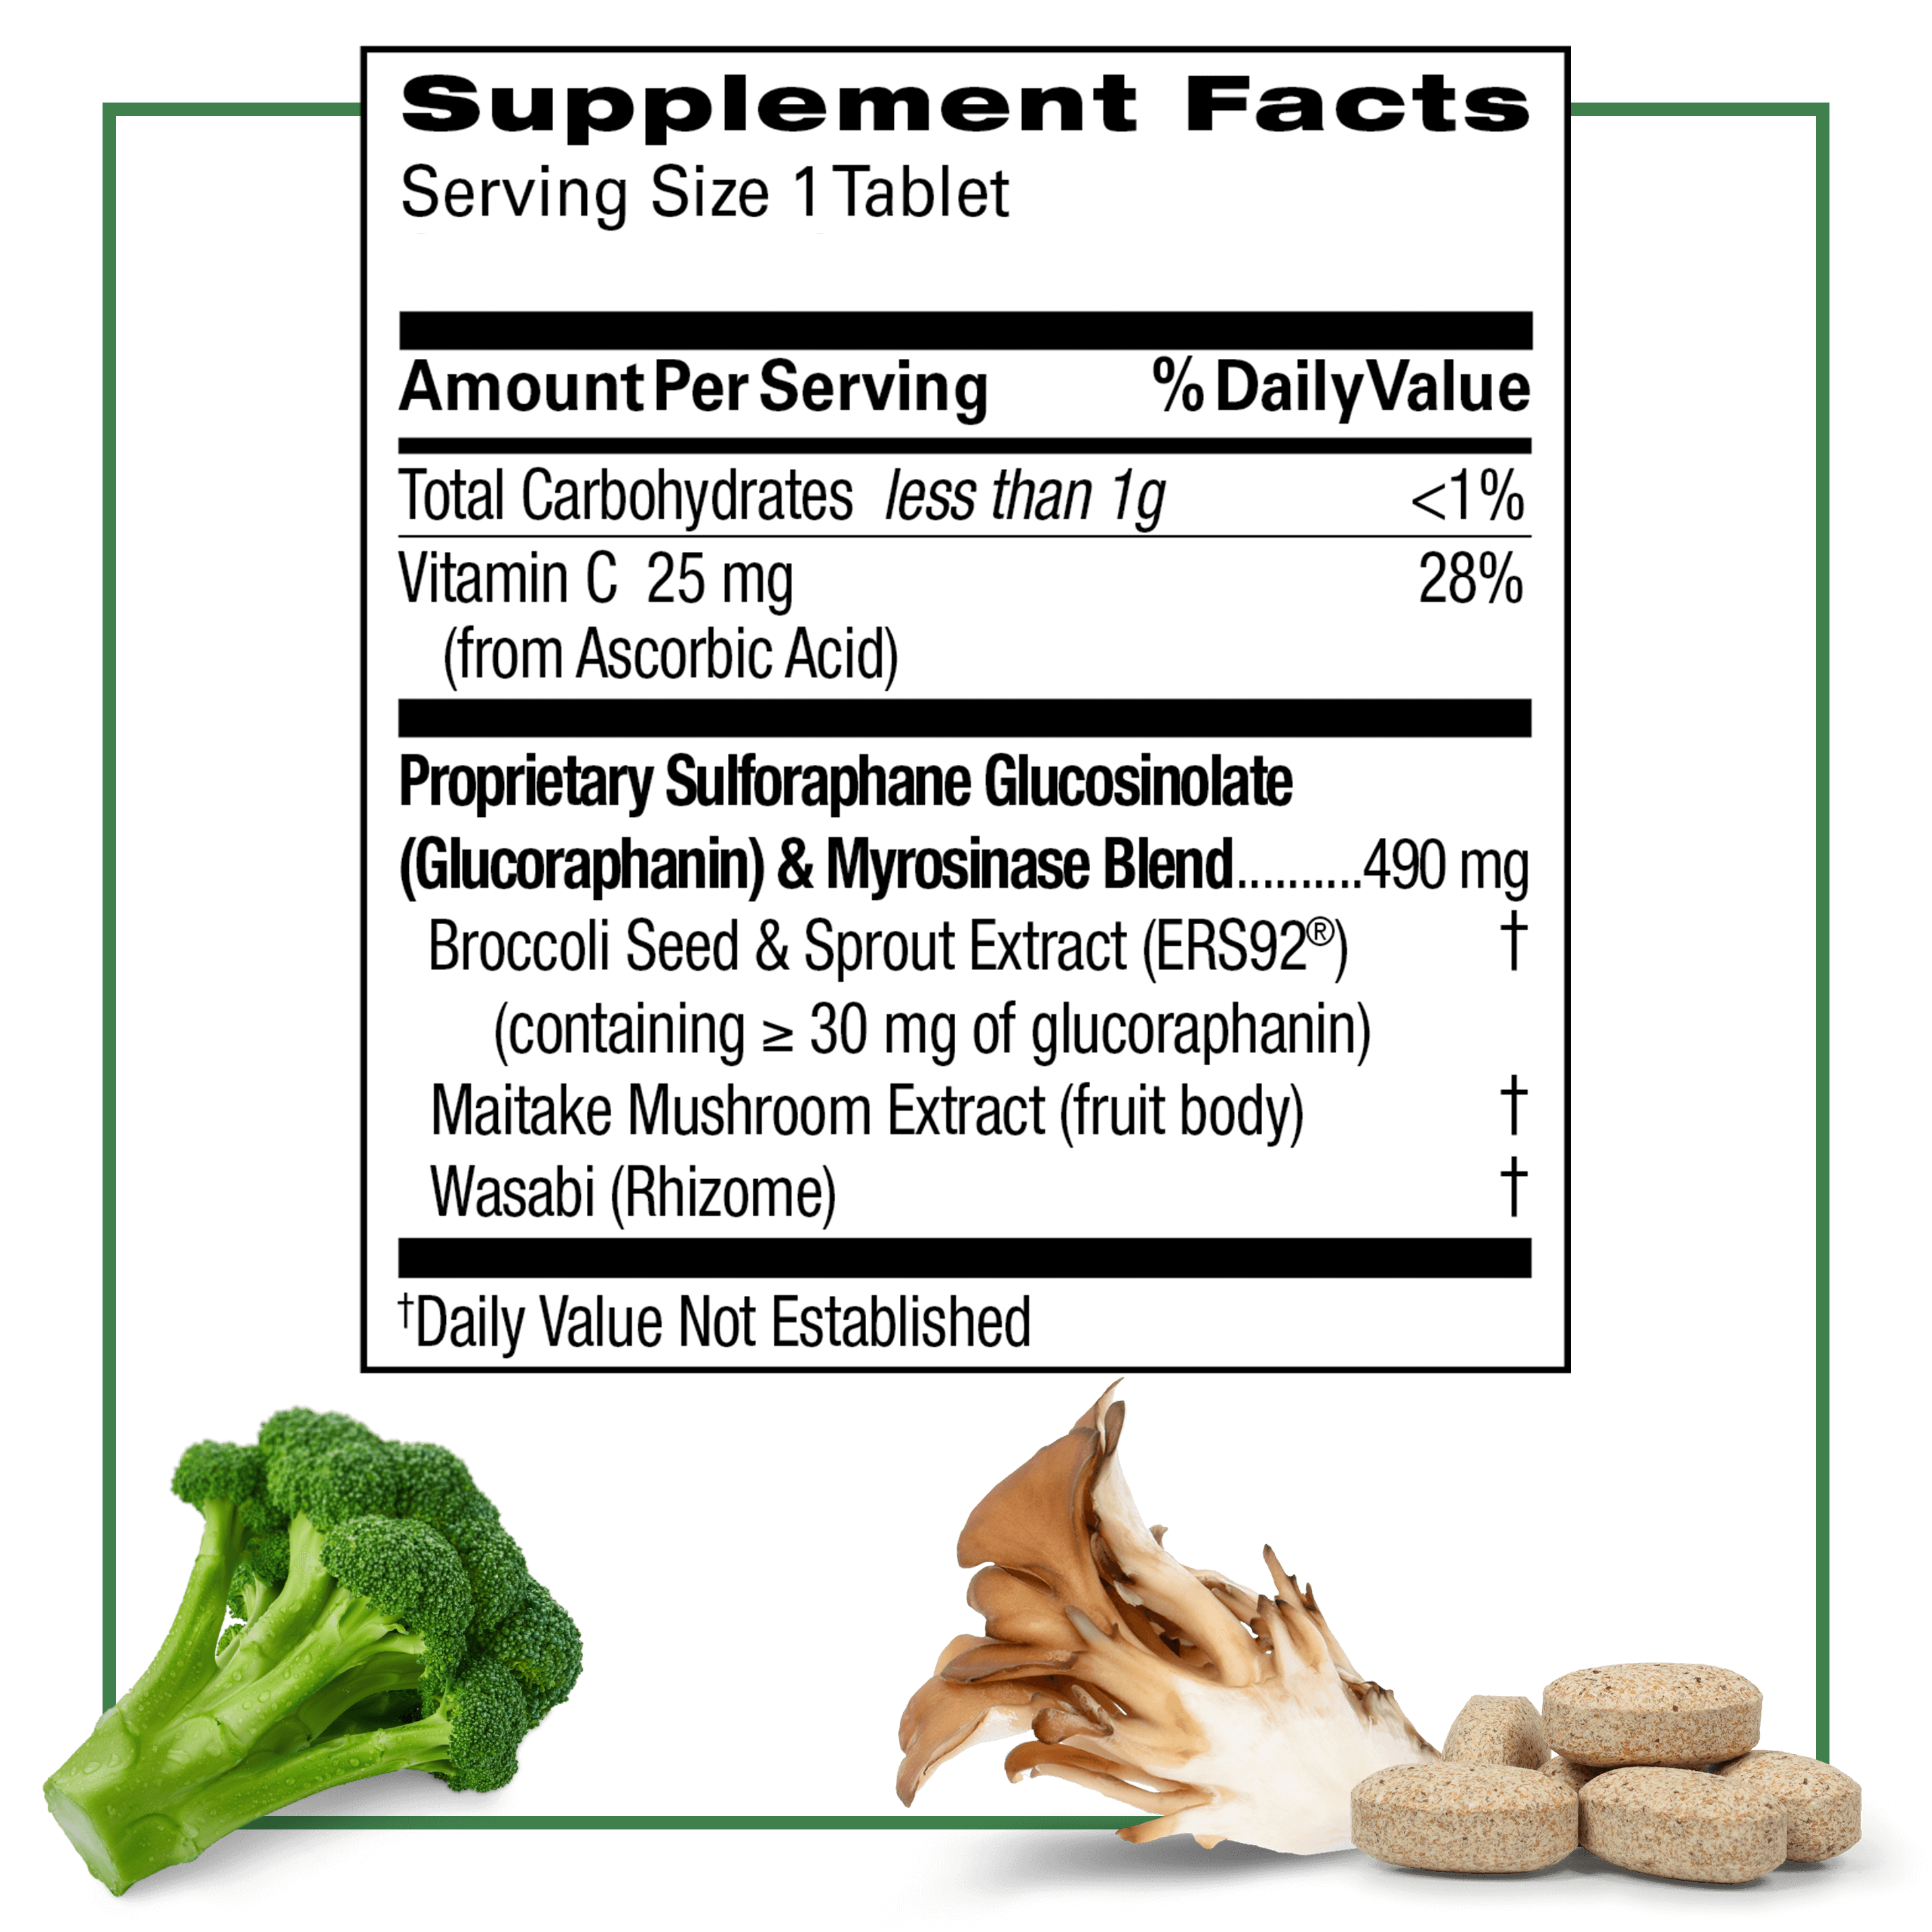 supplement facts table & list of ingredients for Avmacol Extra Strength with a broccoli floret, maitake mushroom & tablets